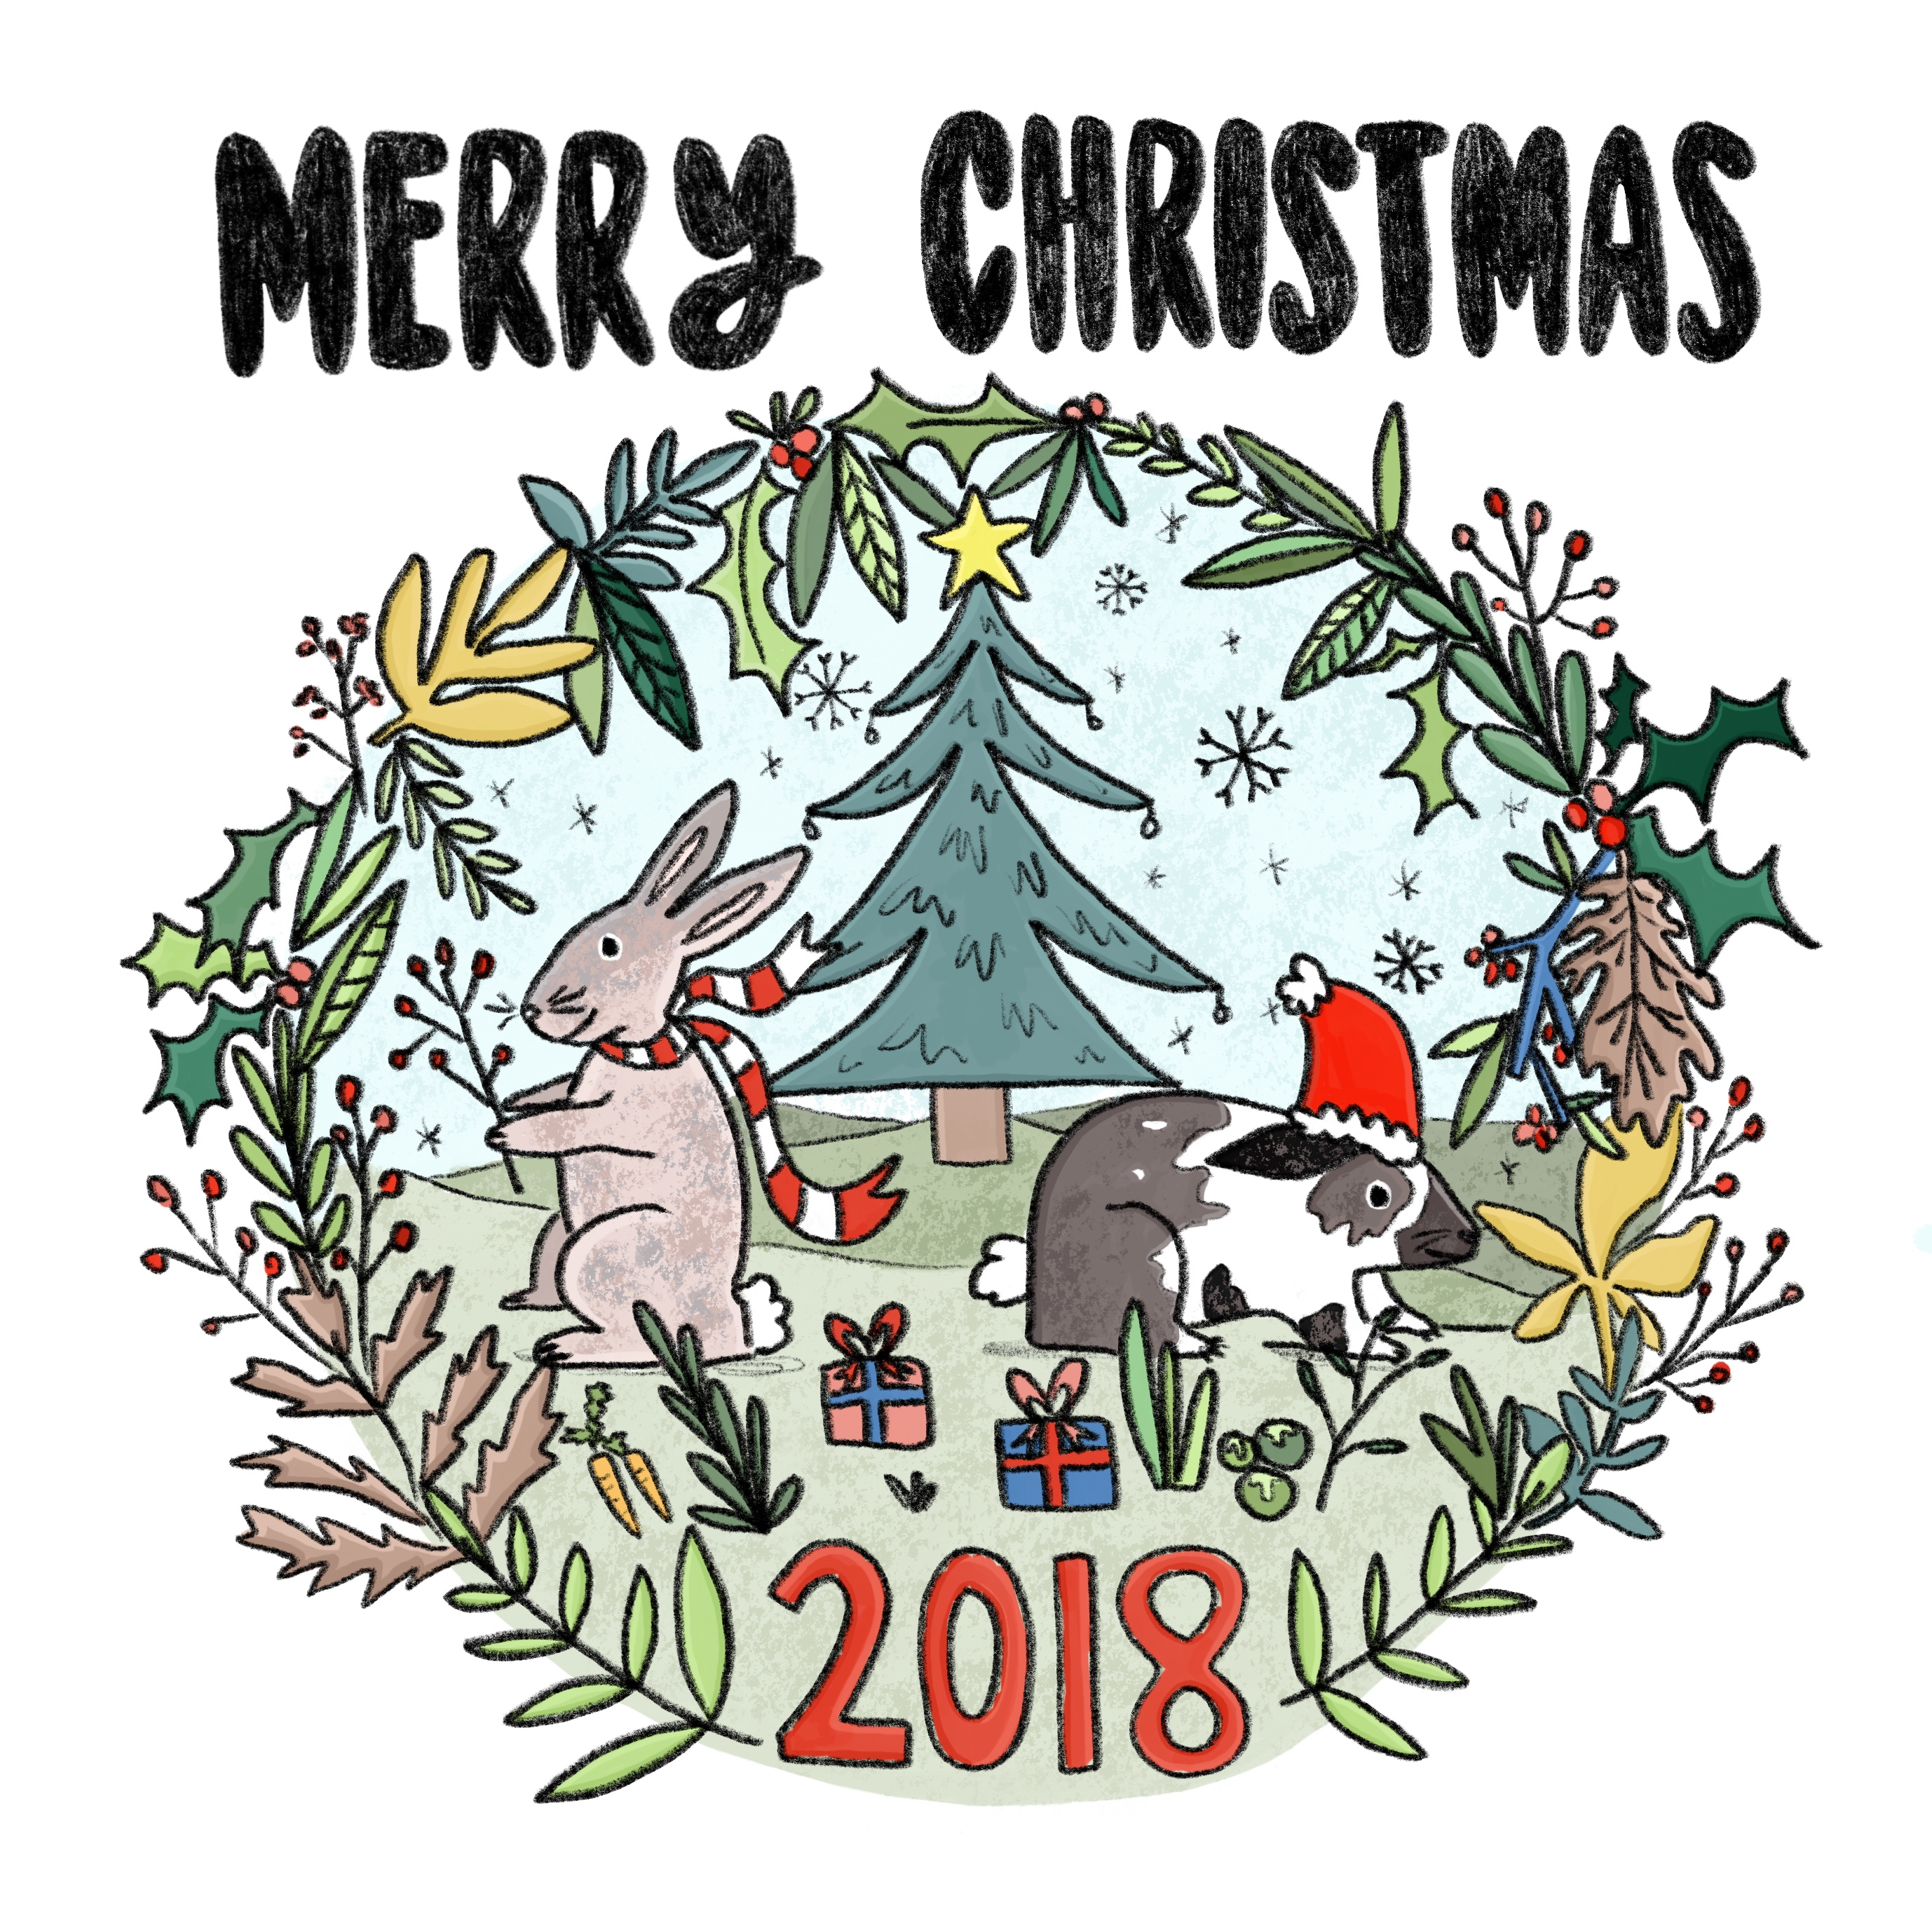 Commissioned Christmas card design